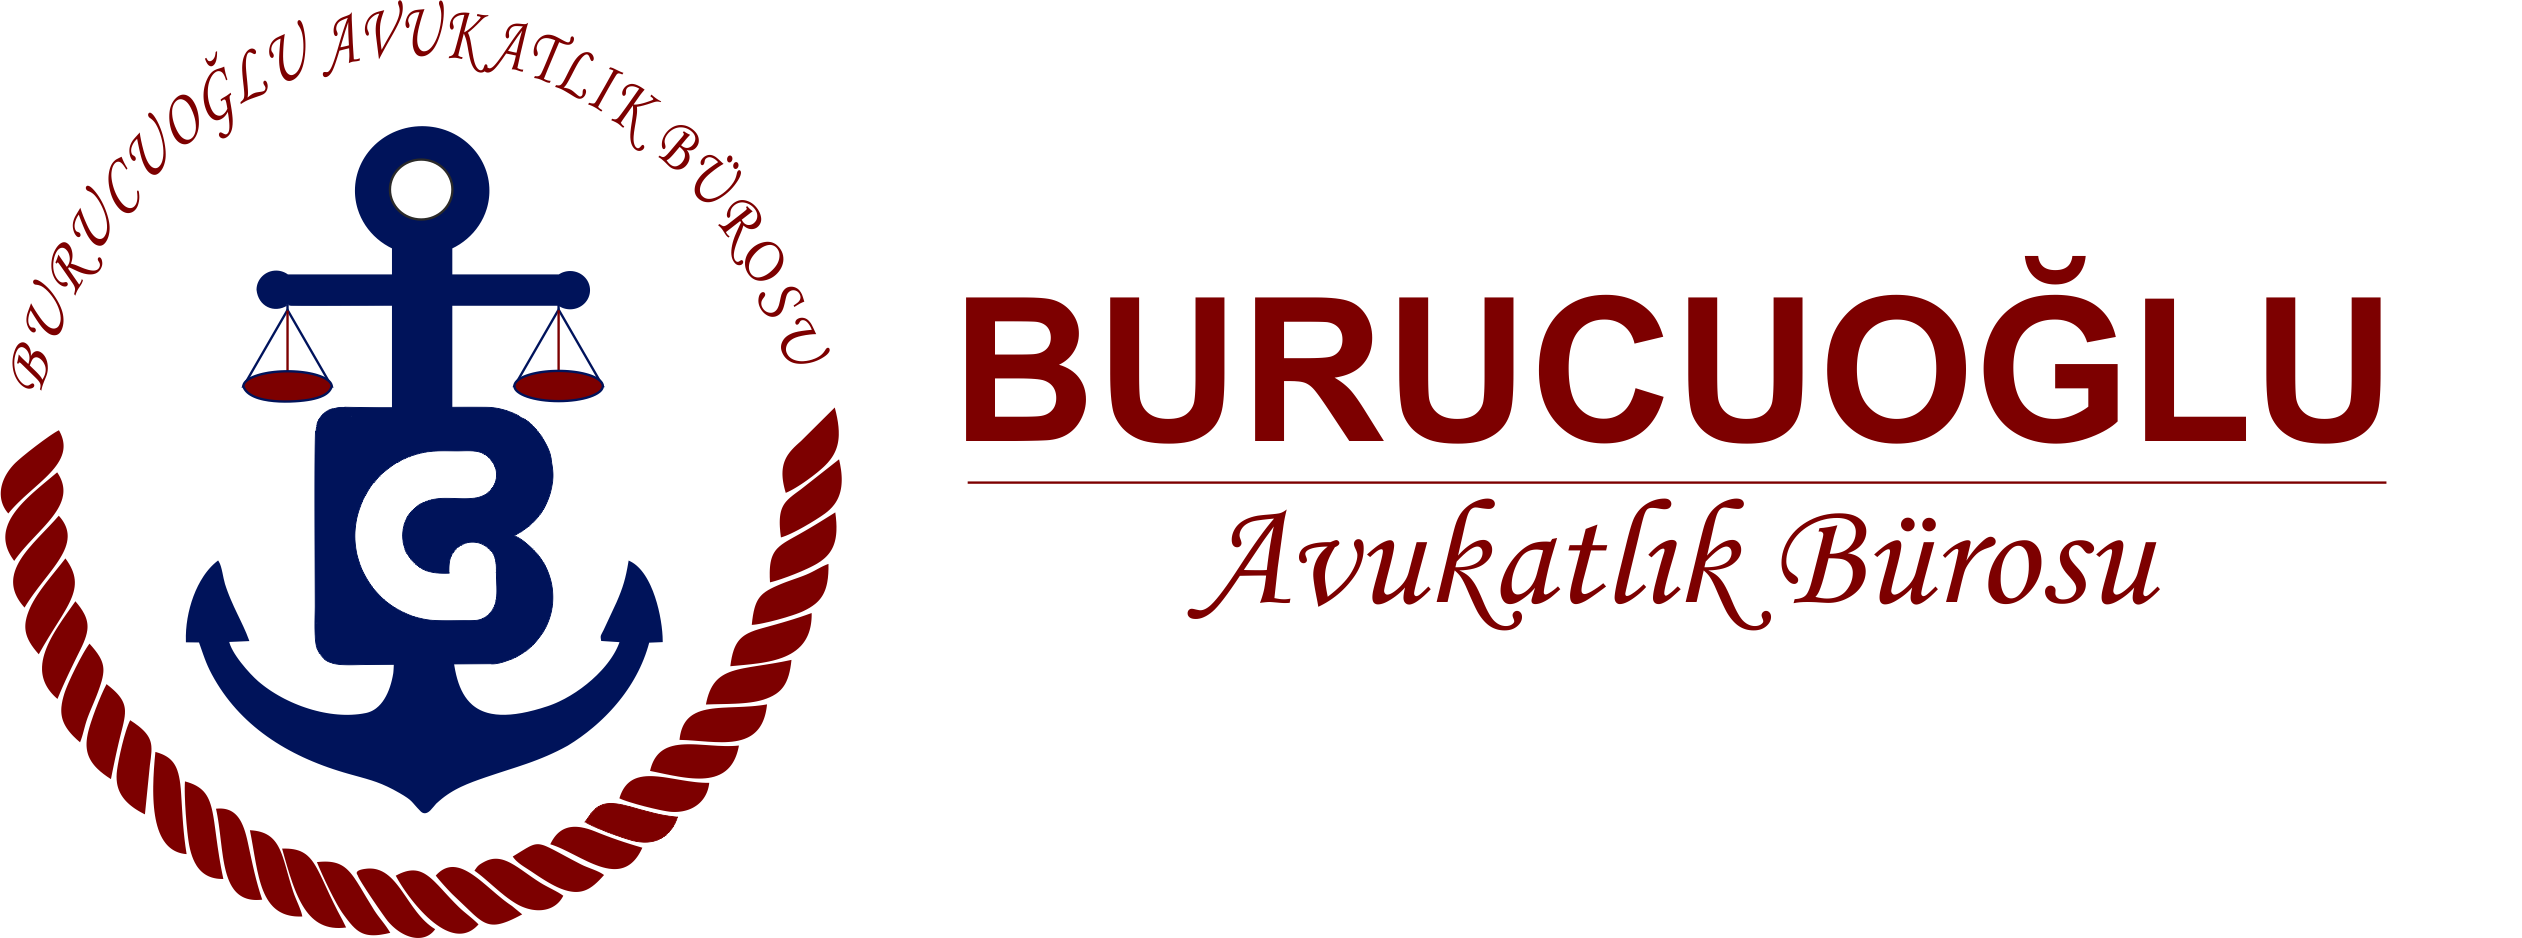 Burucuoğlu Avukatlık Bürosu | Burucuoglu Attorneys at Law